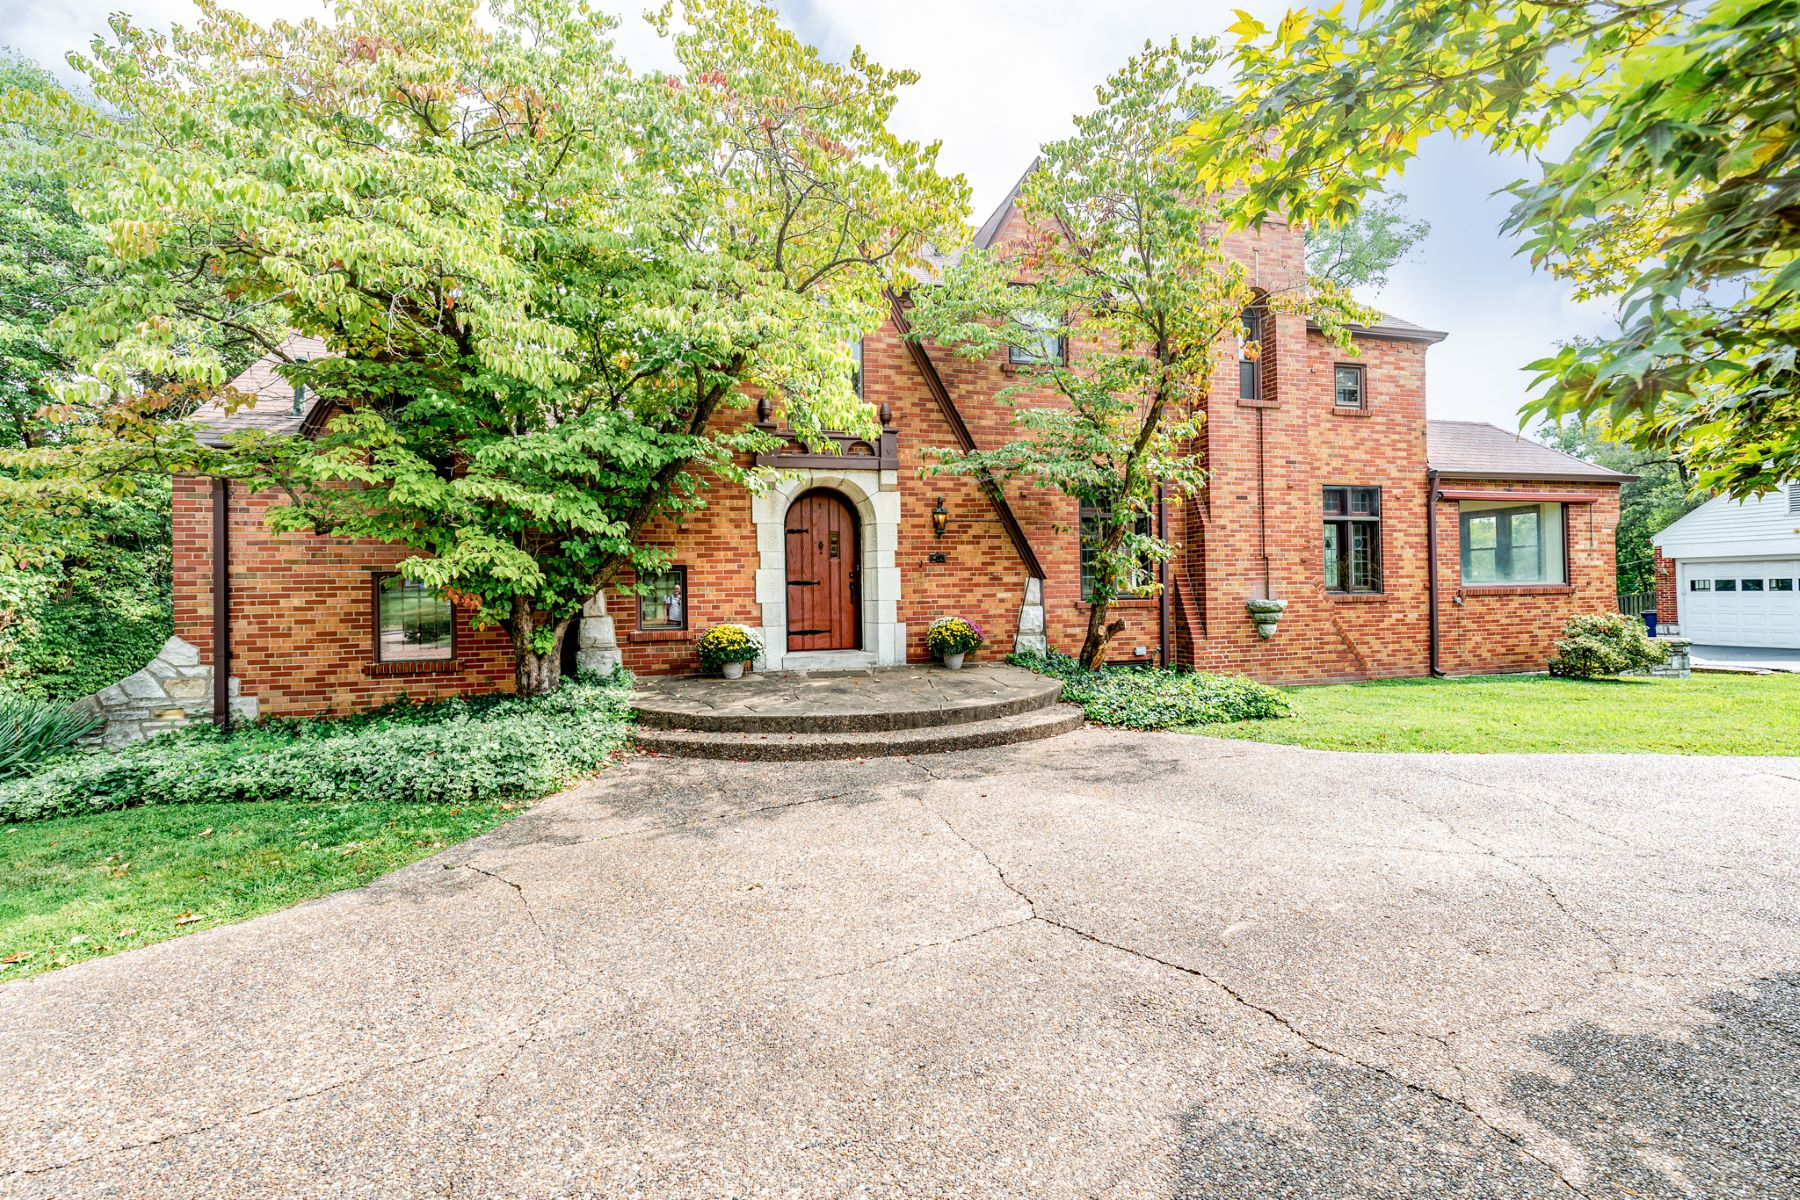 Single Family Homes for Sale at Stately Brick Home With Old World Charm 13 Bellerive Acres St. Louis, Missouri 63121 United States